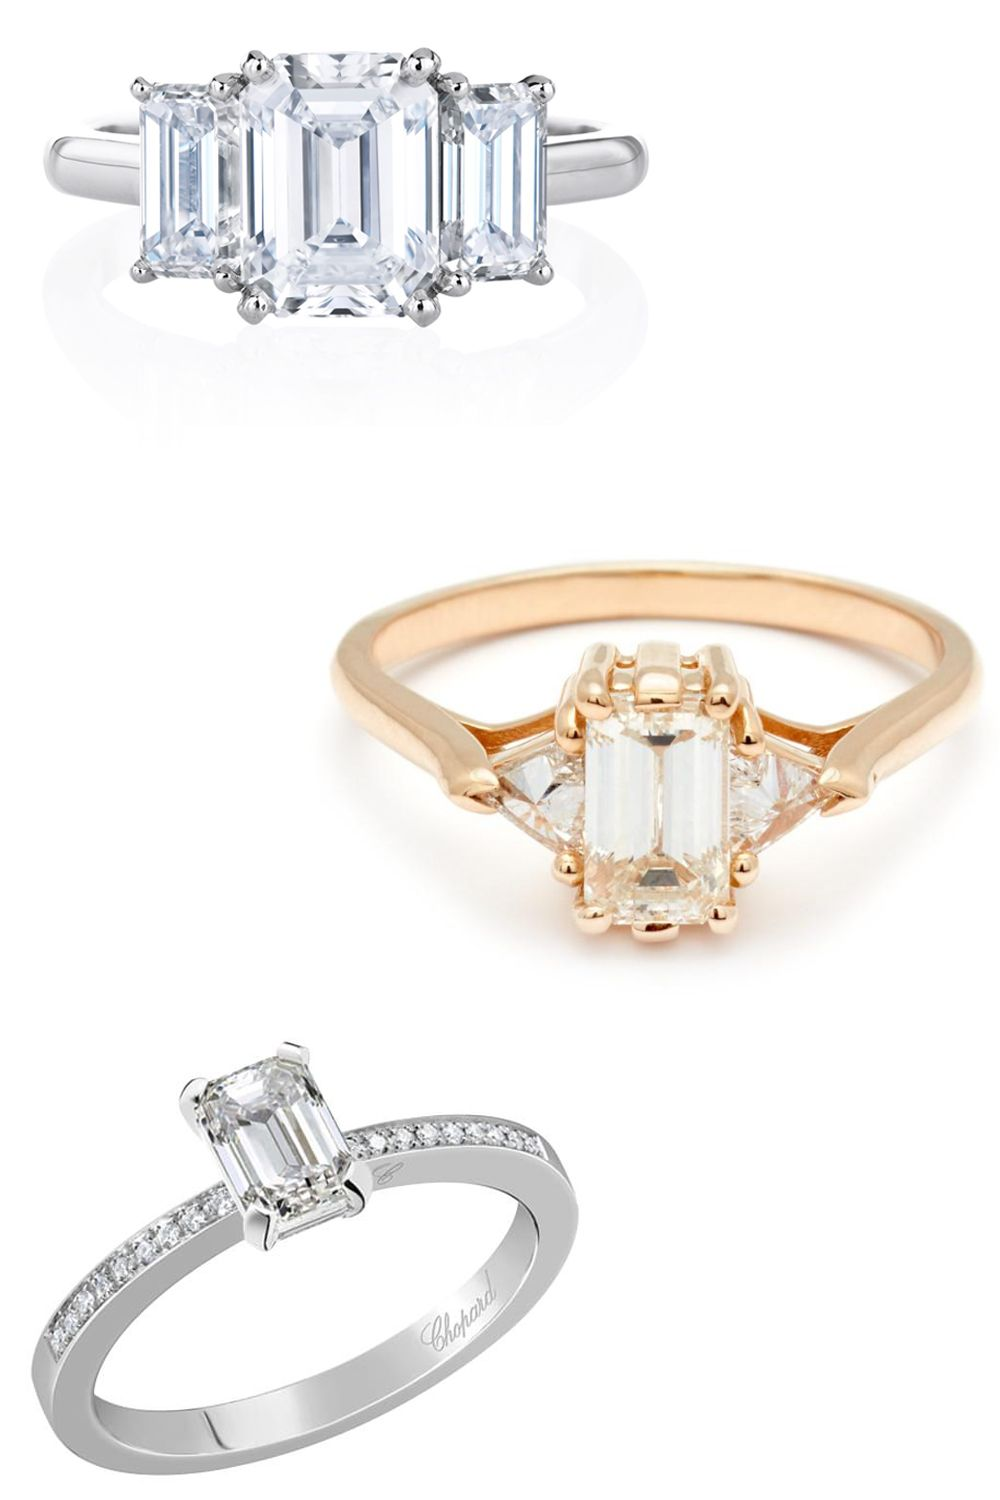 engagement ring cuts every woman should know best diamond engagement ring styles - Wedding Ring Cuts